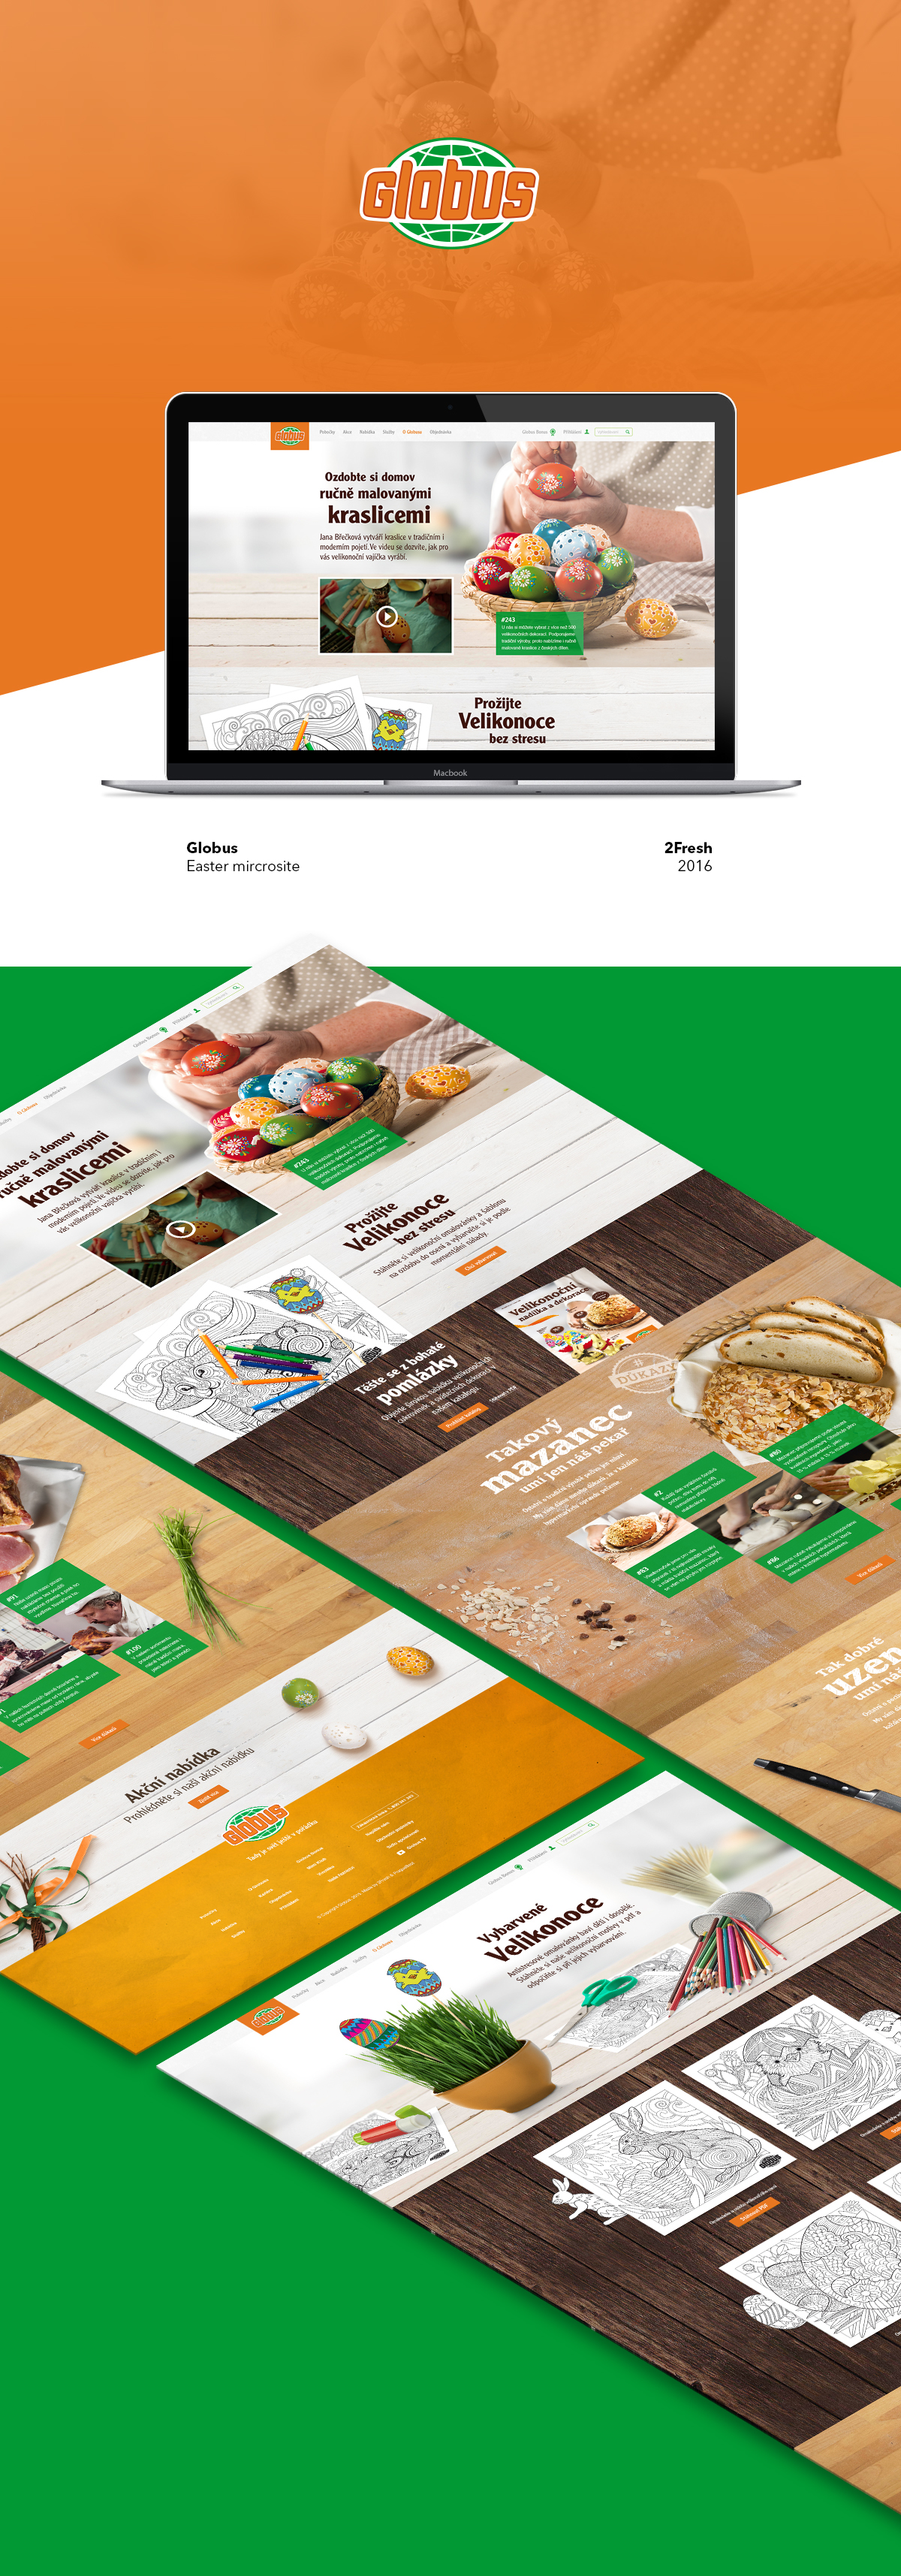 Easter Globus eggs coloring antistress wood bunny cake Smoked meat market Czech shop Web design